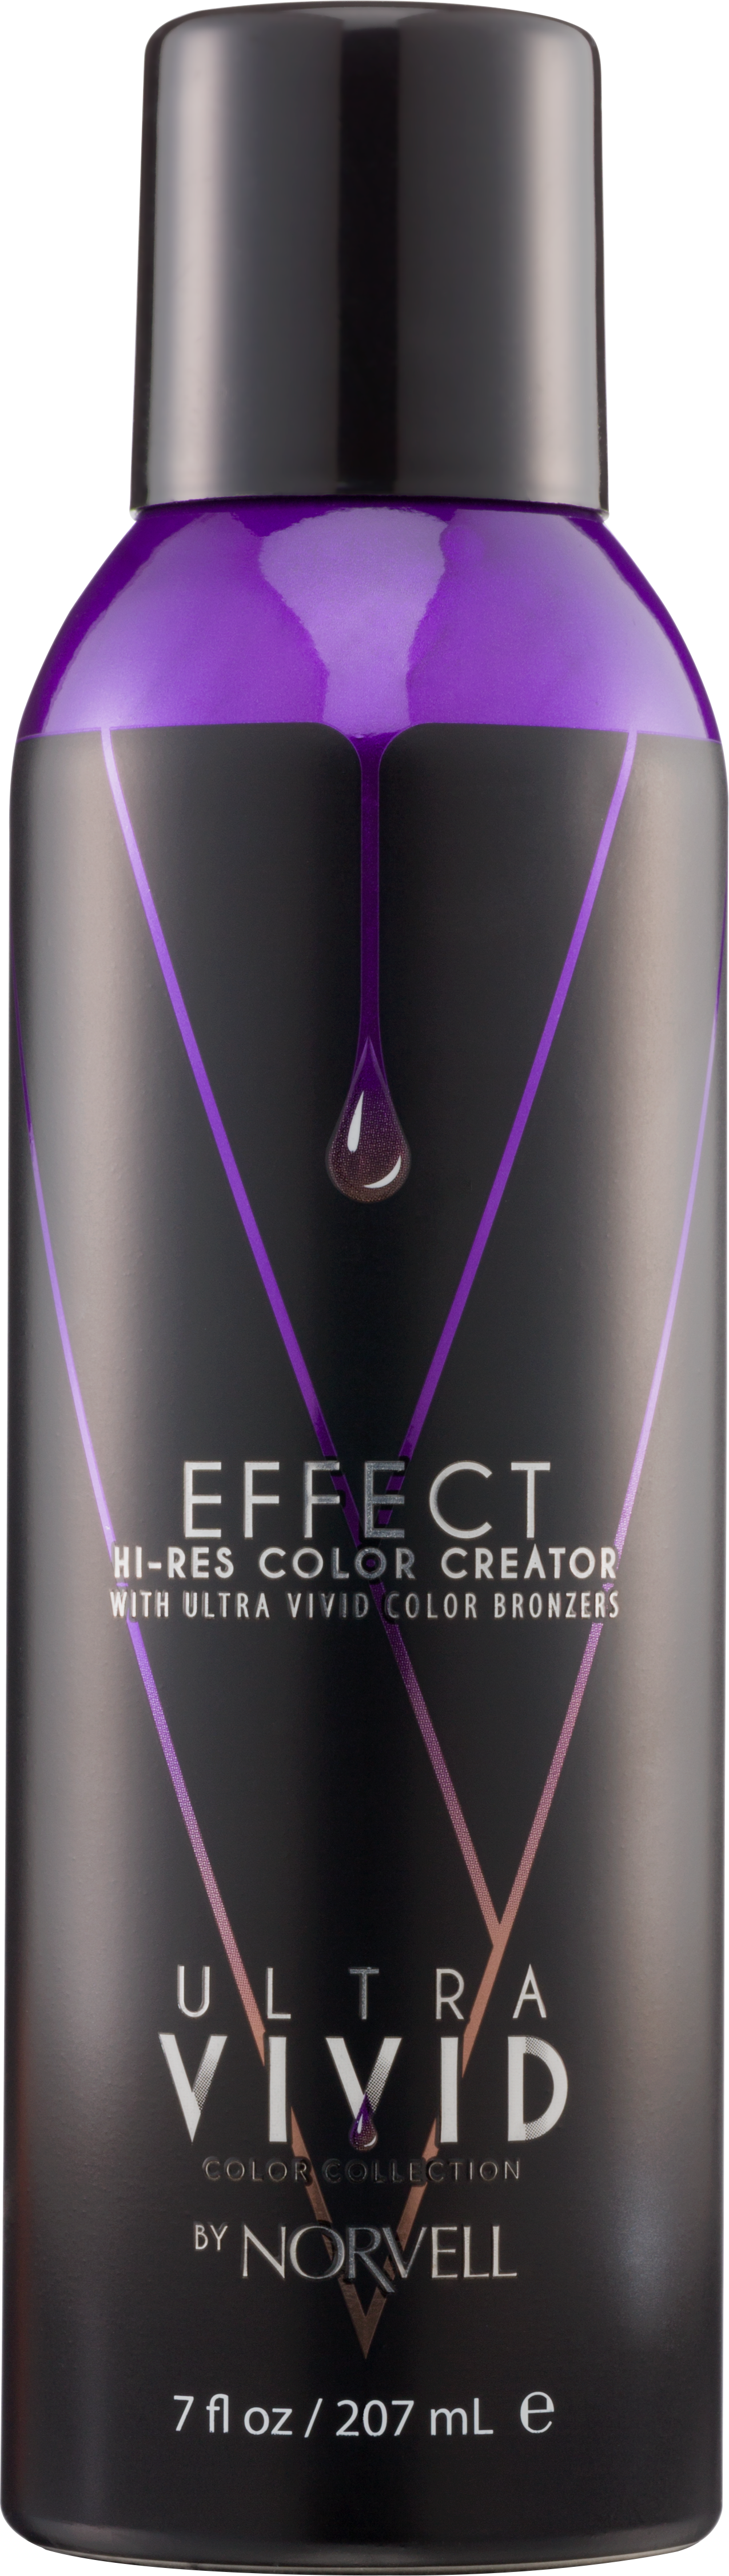 Norvell Effect Self Tanning Mist